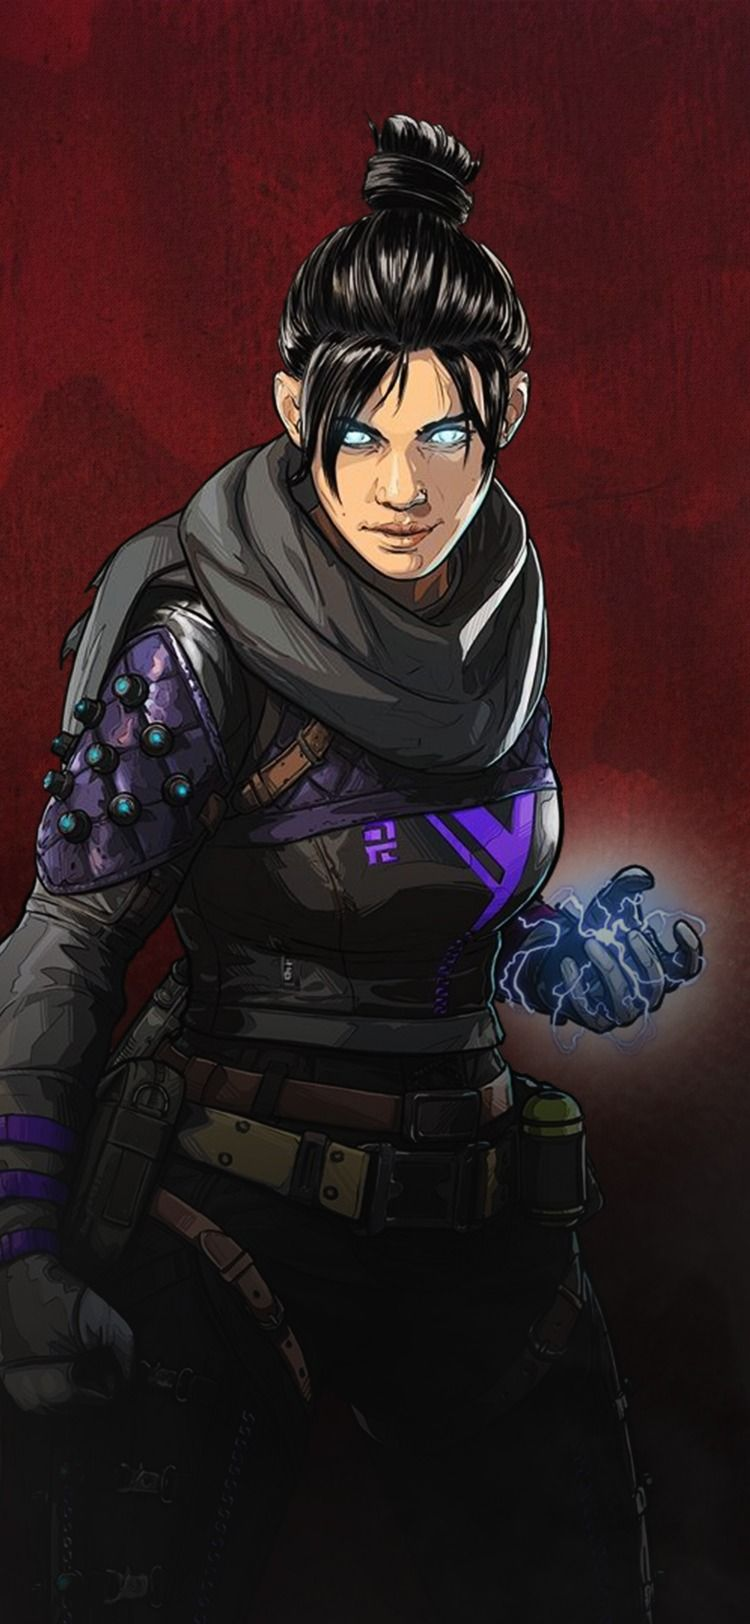 Wraith Apex Legends Wallpaper Posted By Michelle Thompson